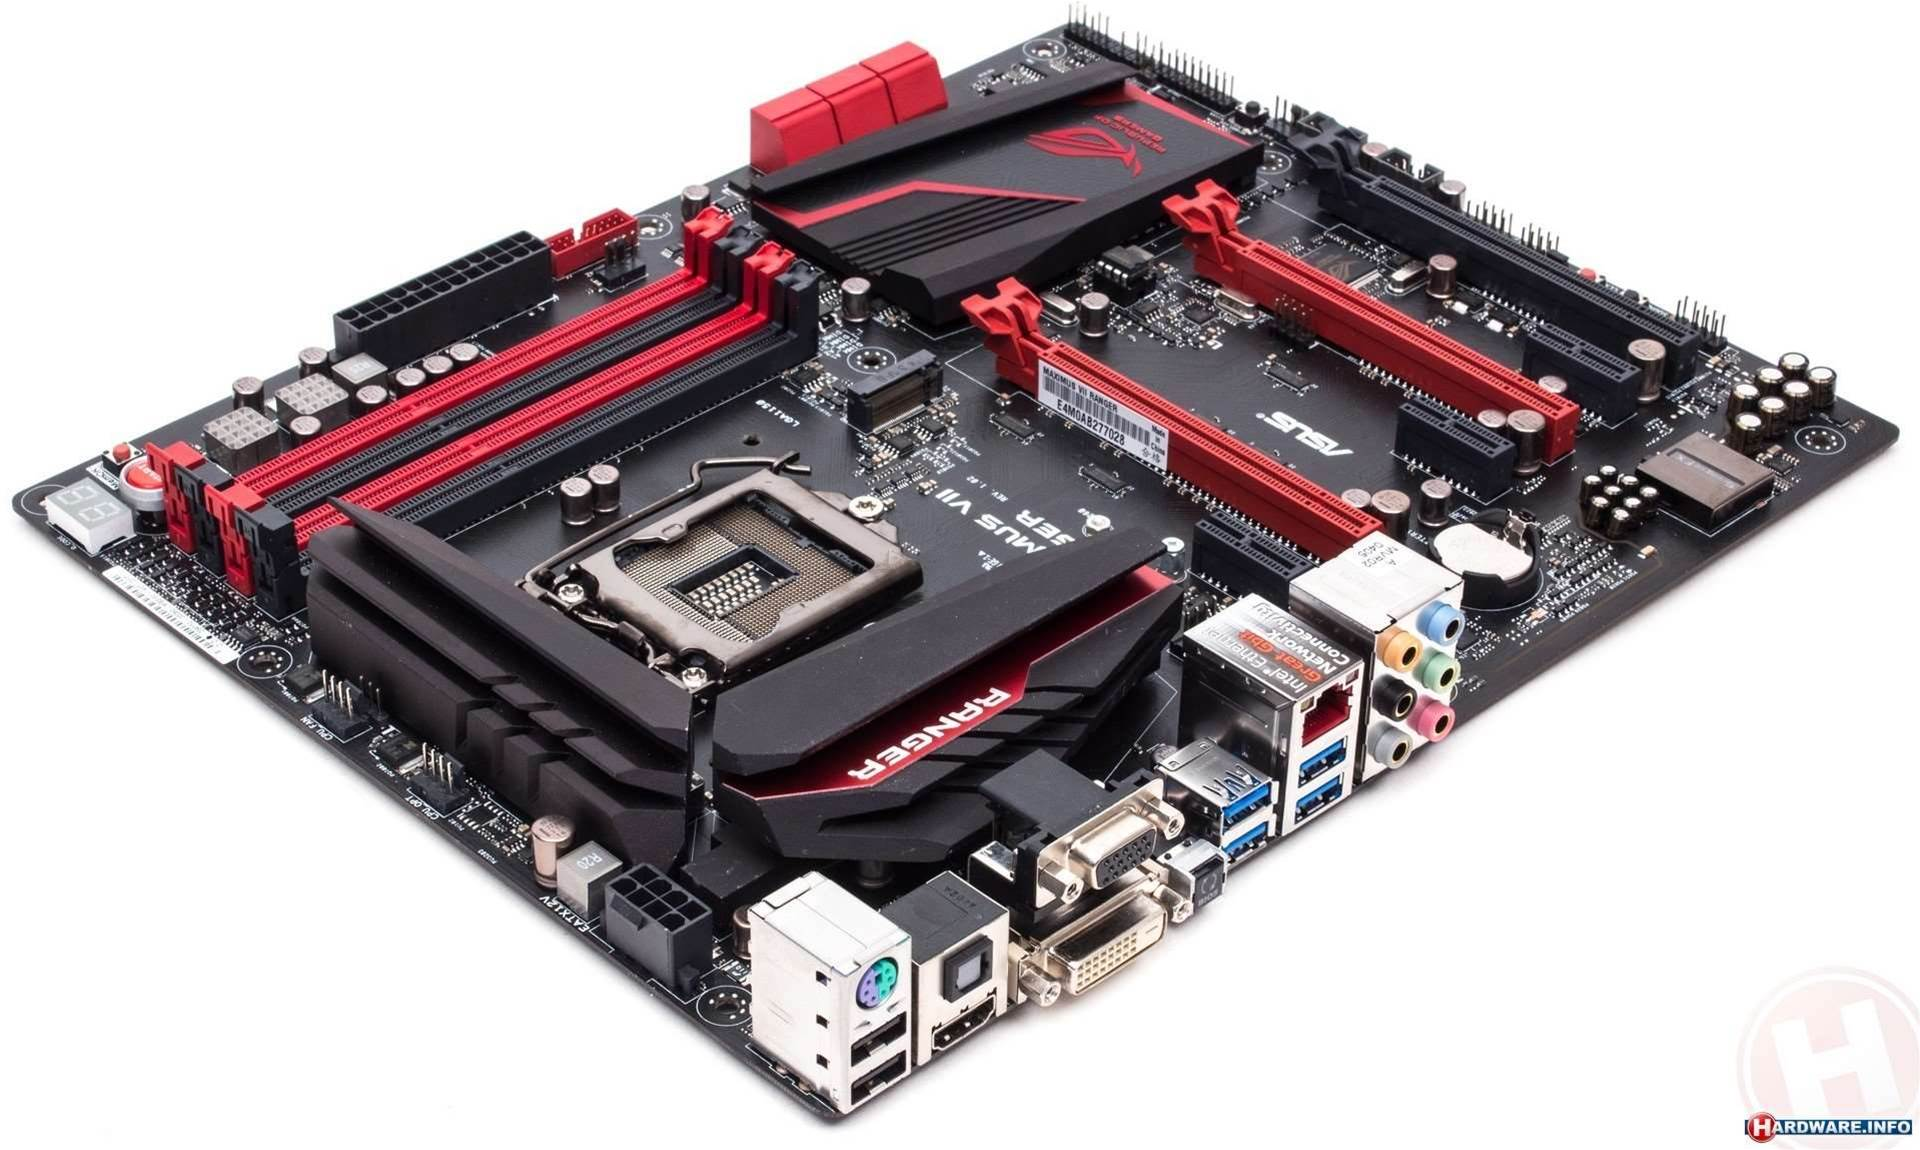 Review: Asus Maximus VII Ranger